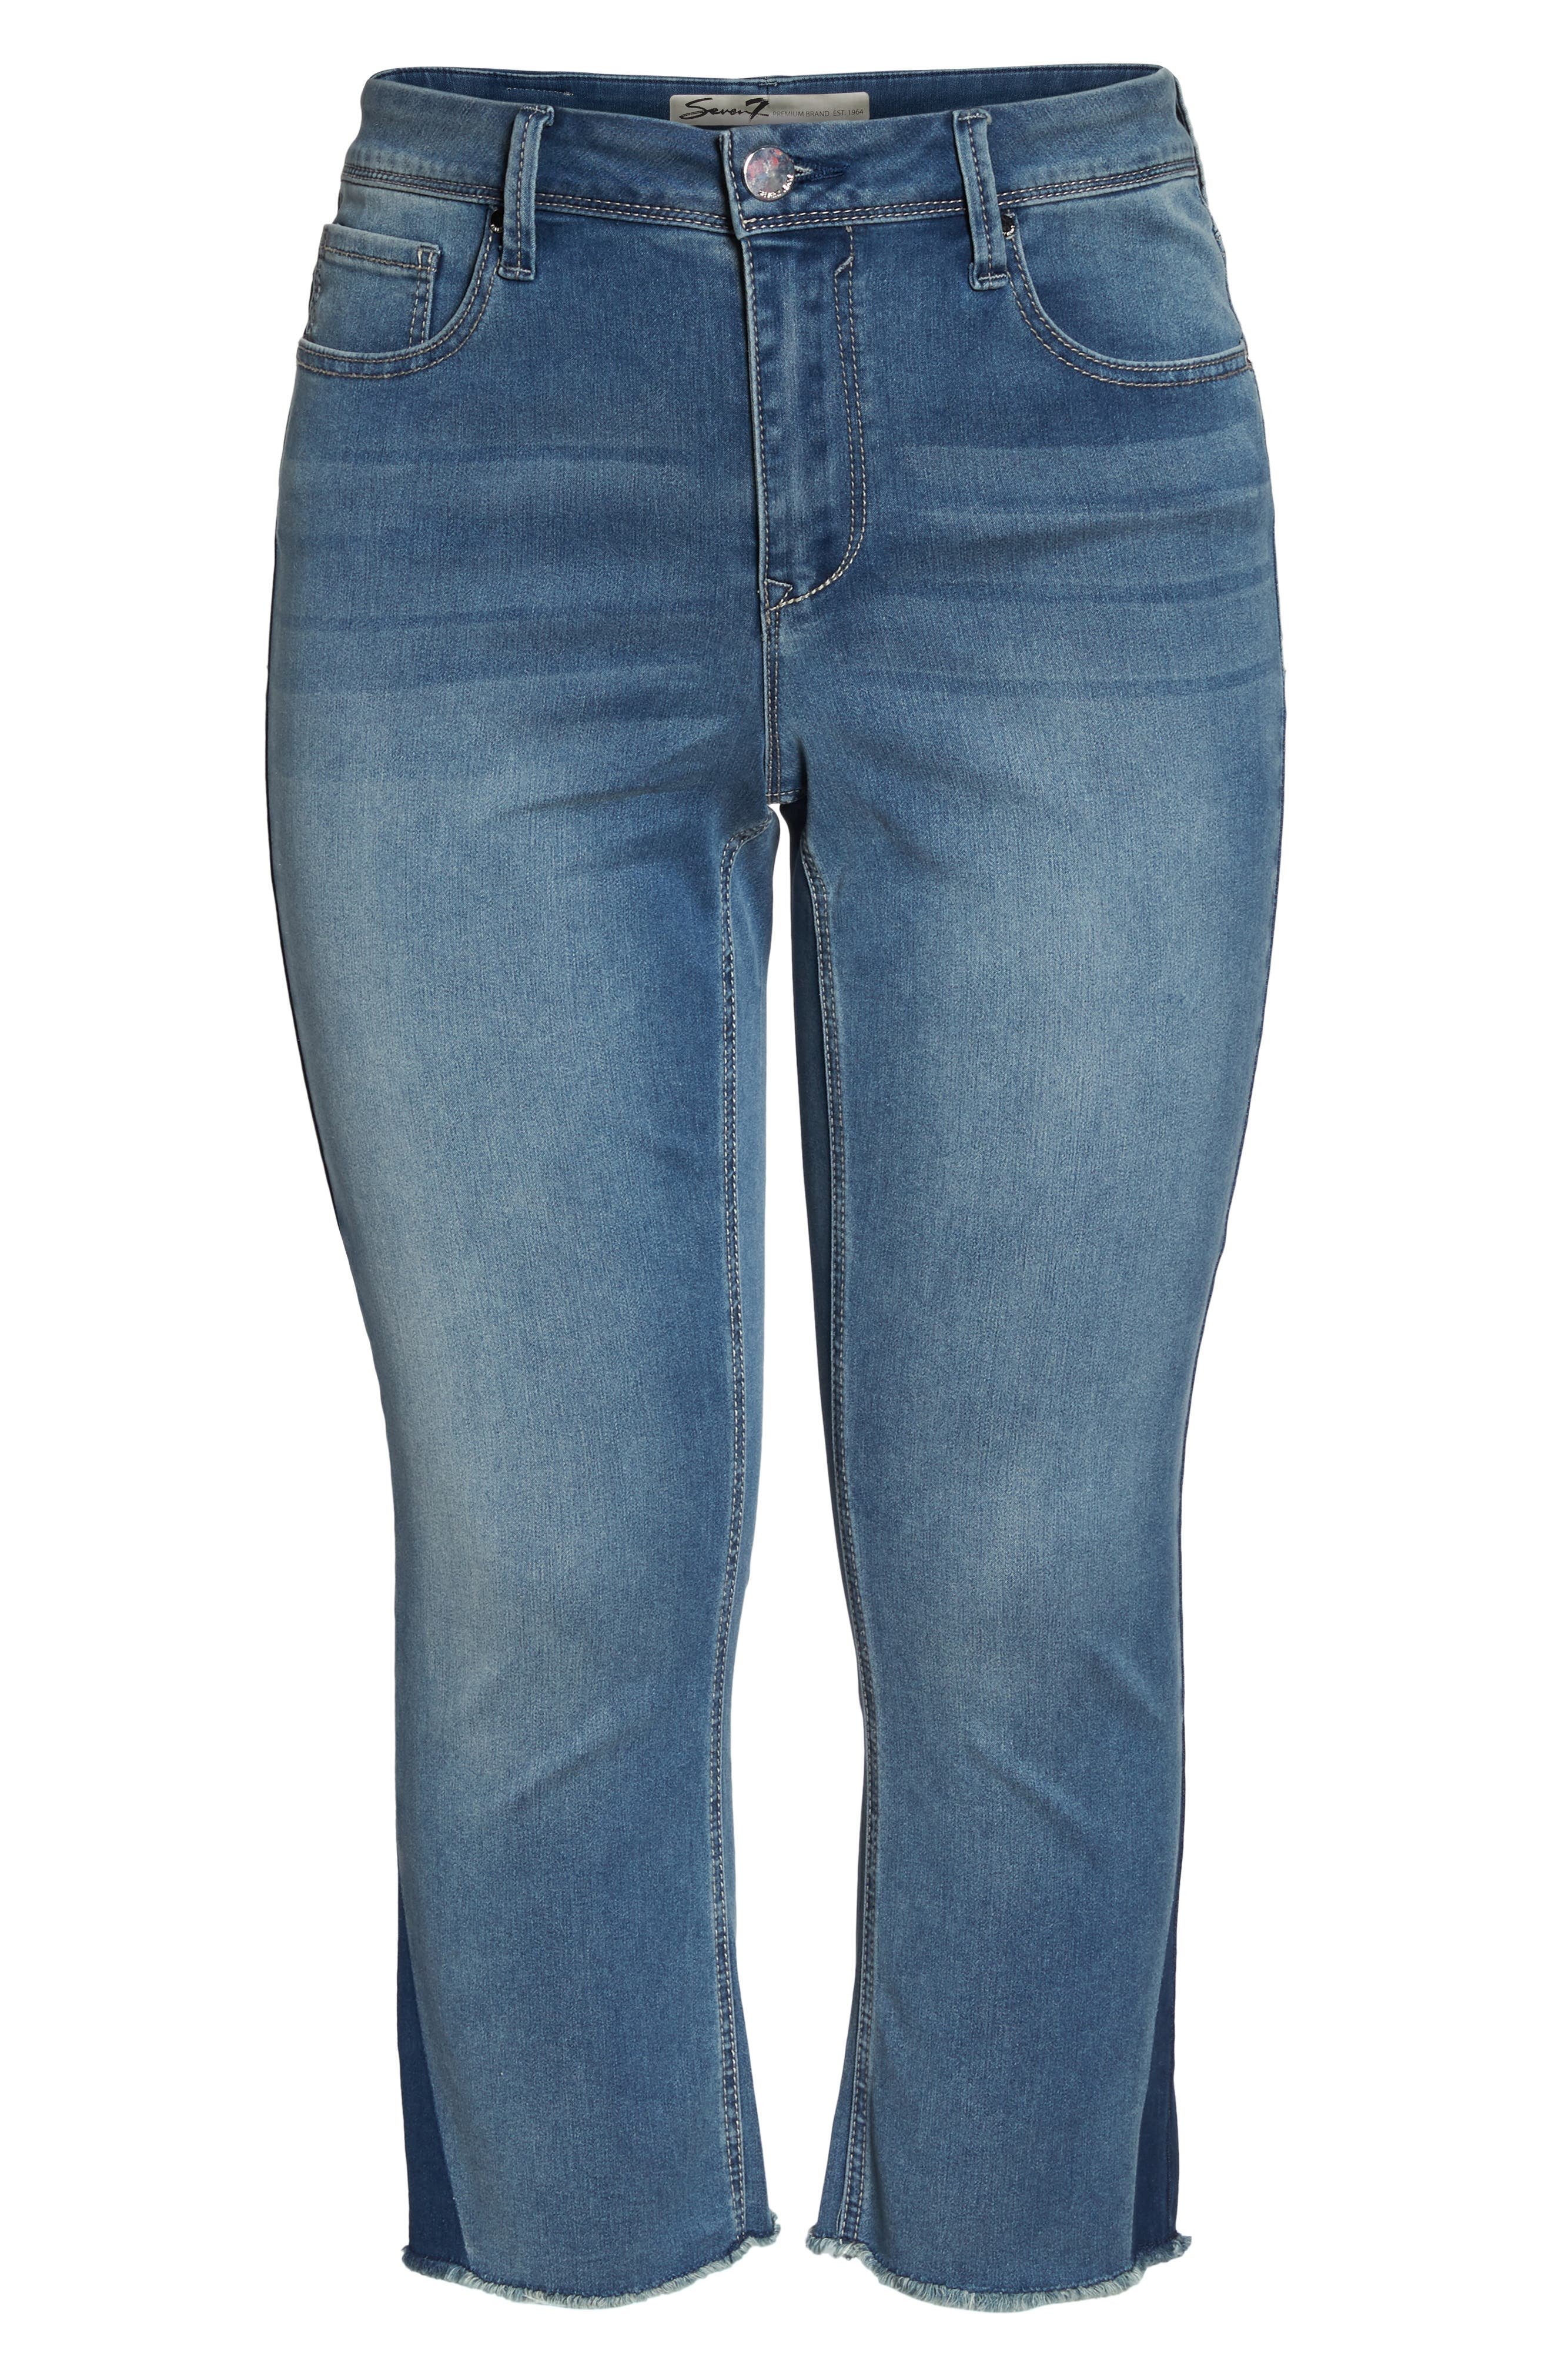 Shadow Godet Ankle Duster Jeans,                             Alternate thumbnail 7, color,                             Levine